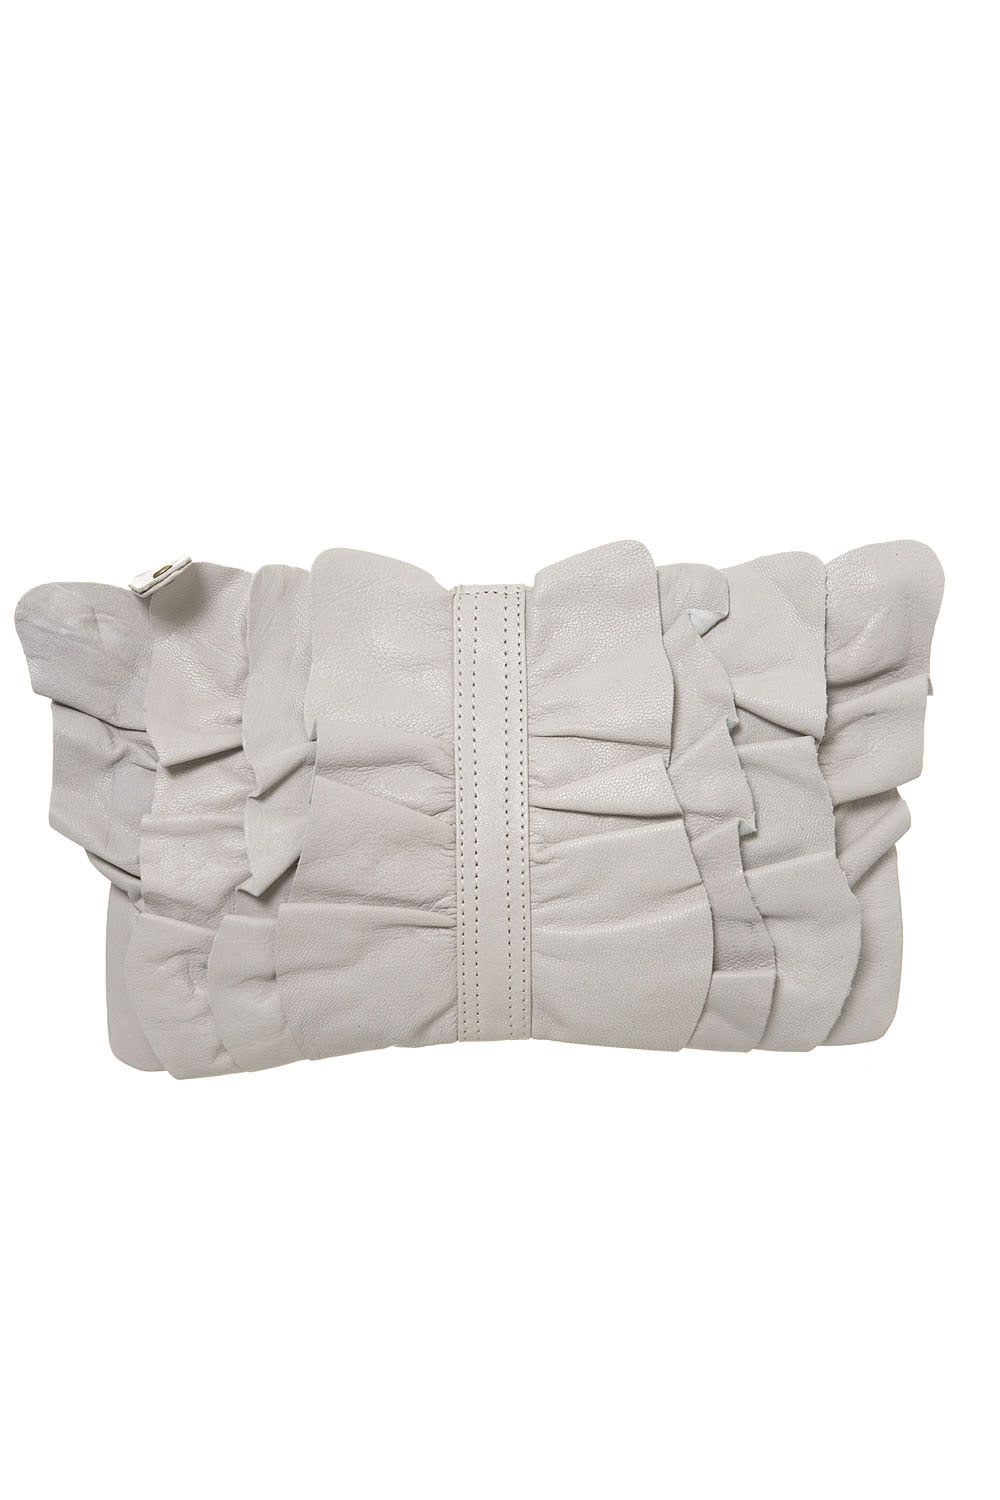 Warehouse Leather ruffle front clutch product image